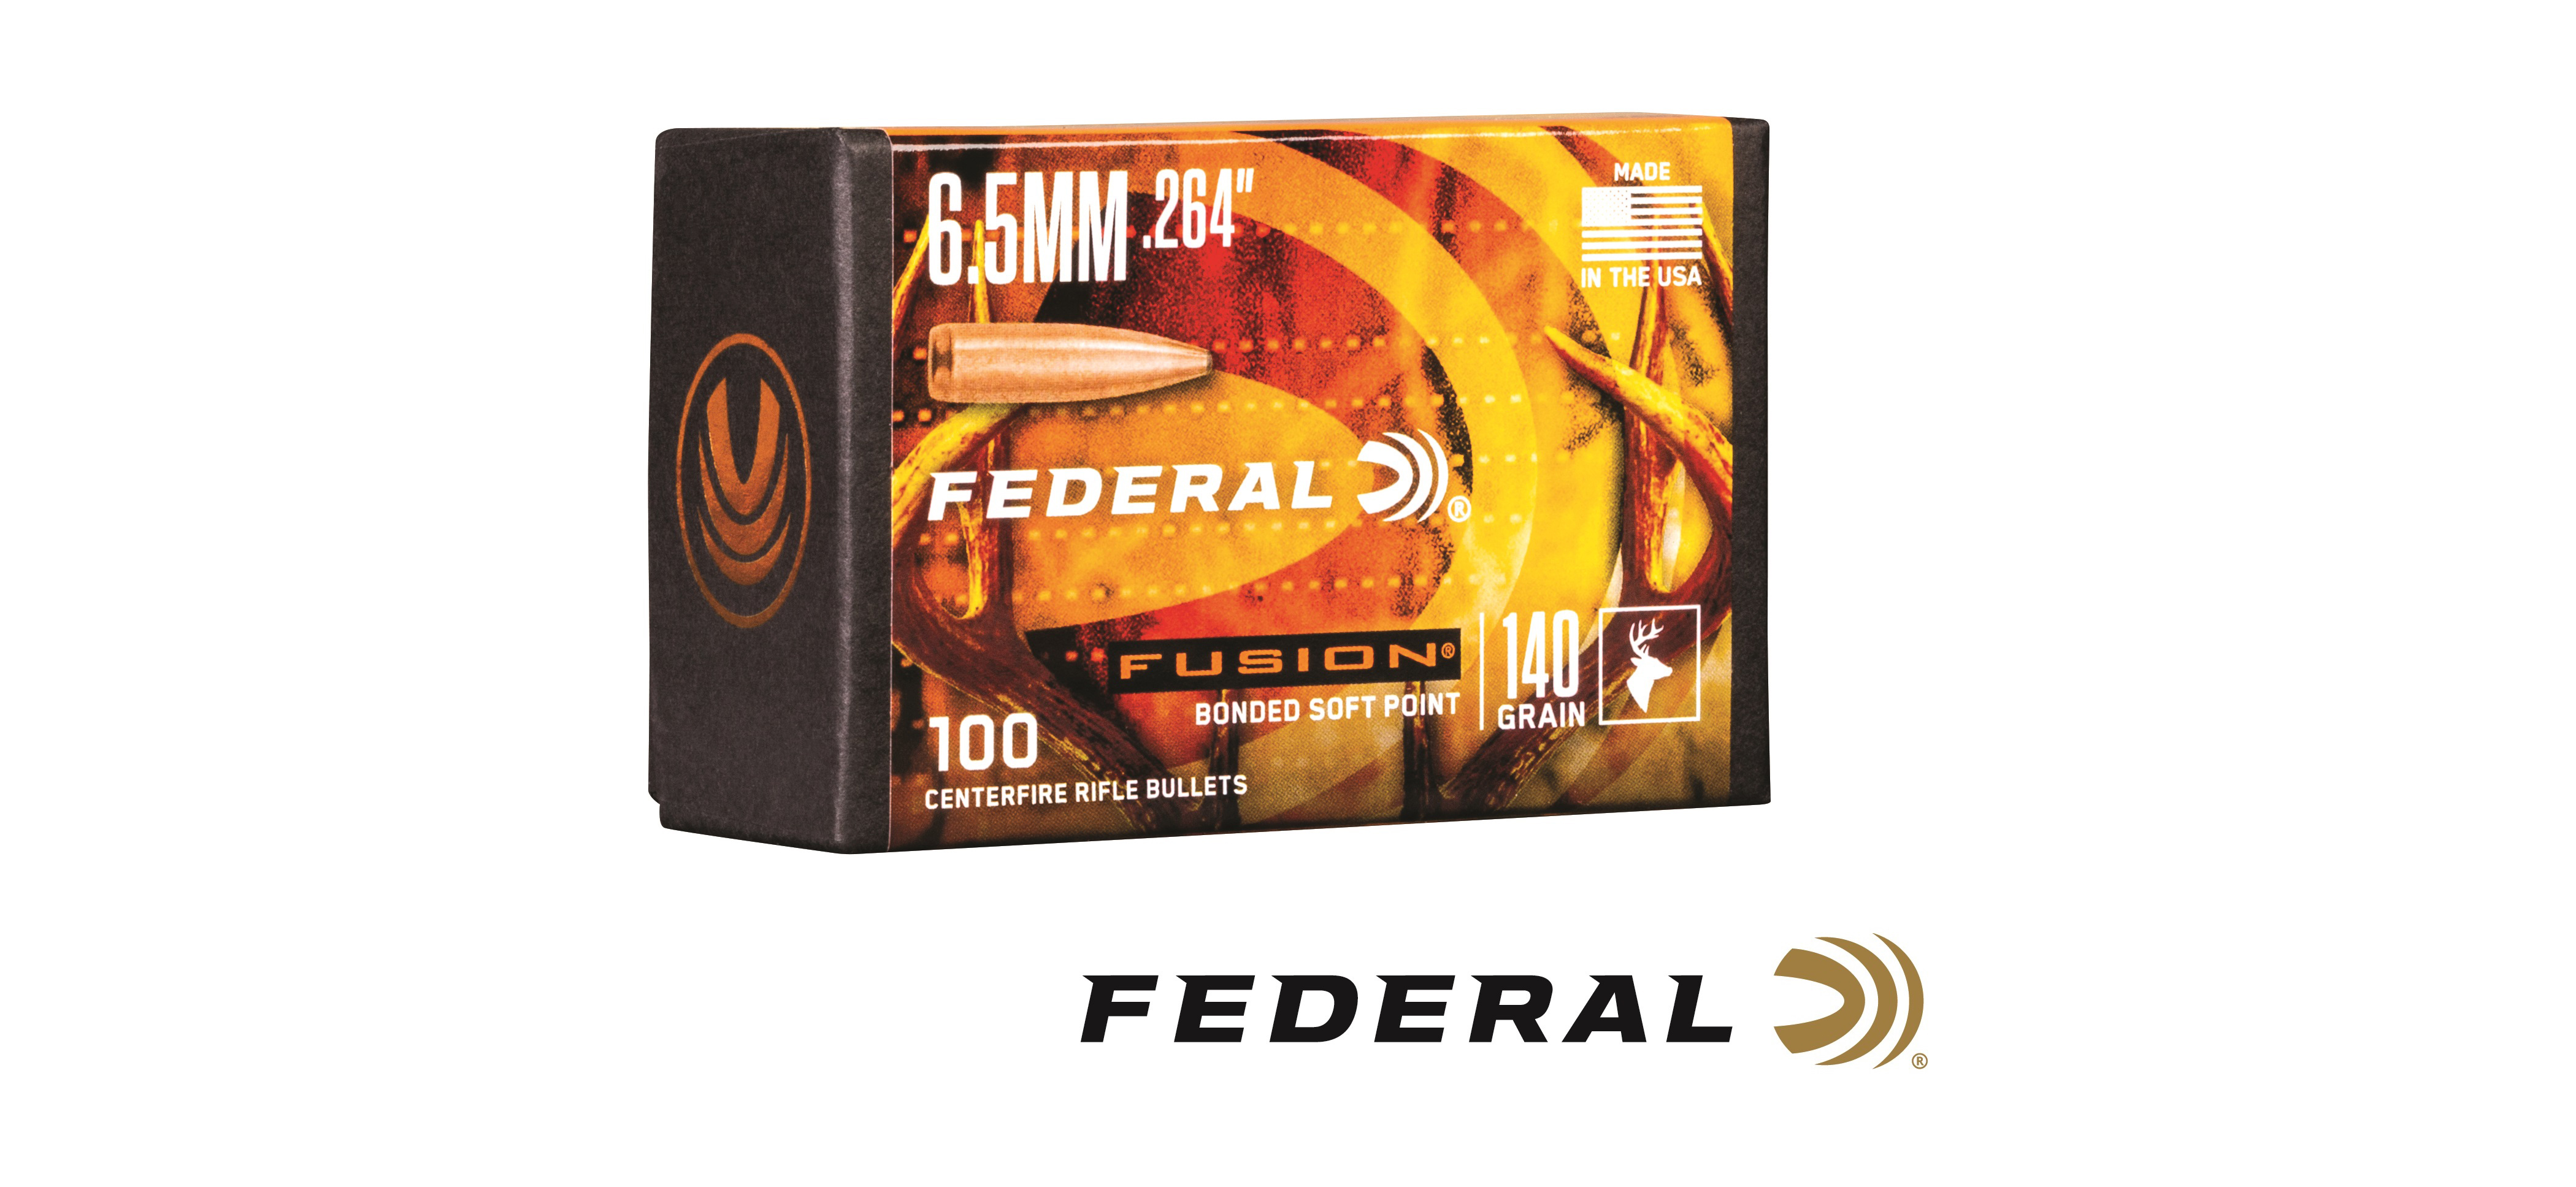 Federal Premium Offers their Fusion Bullets as a Reloading Component